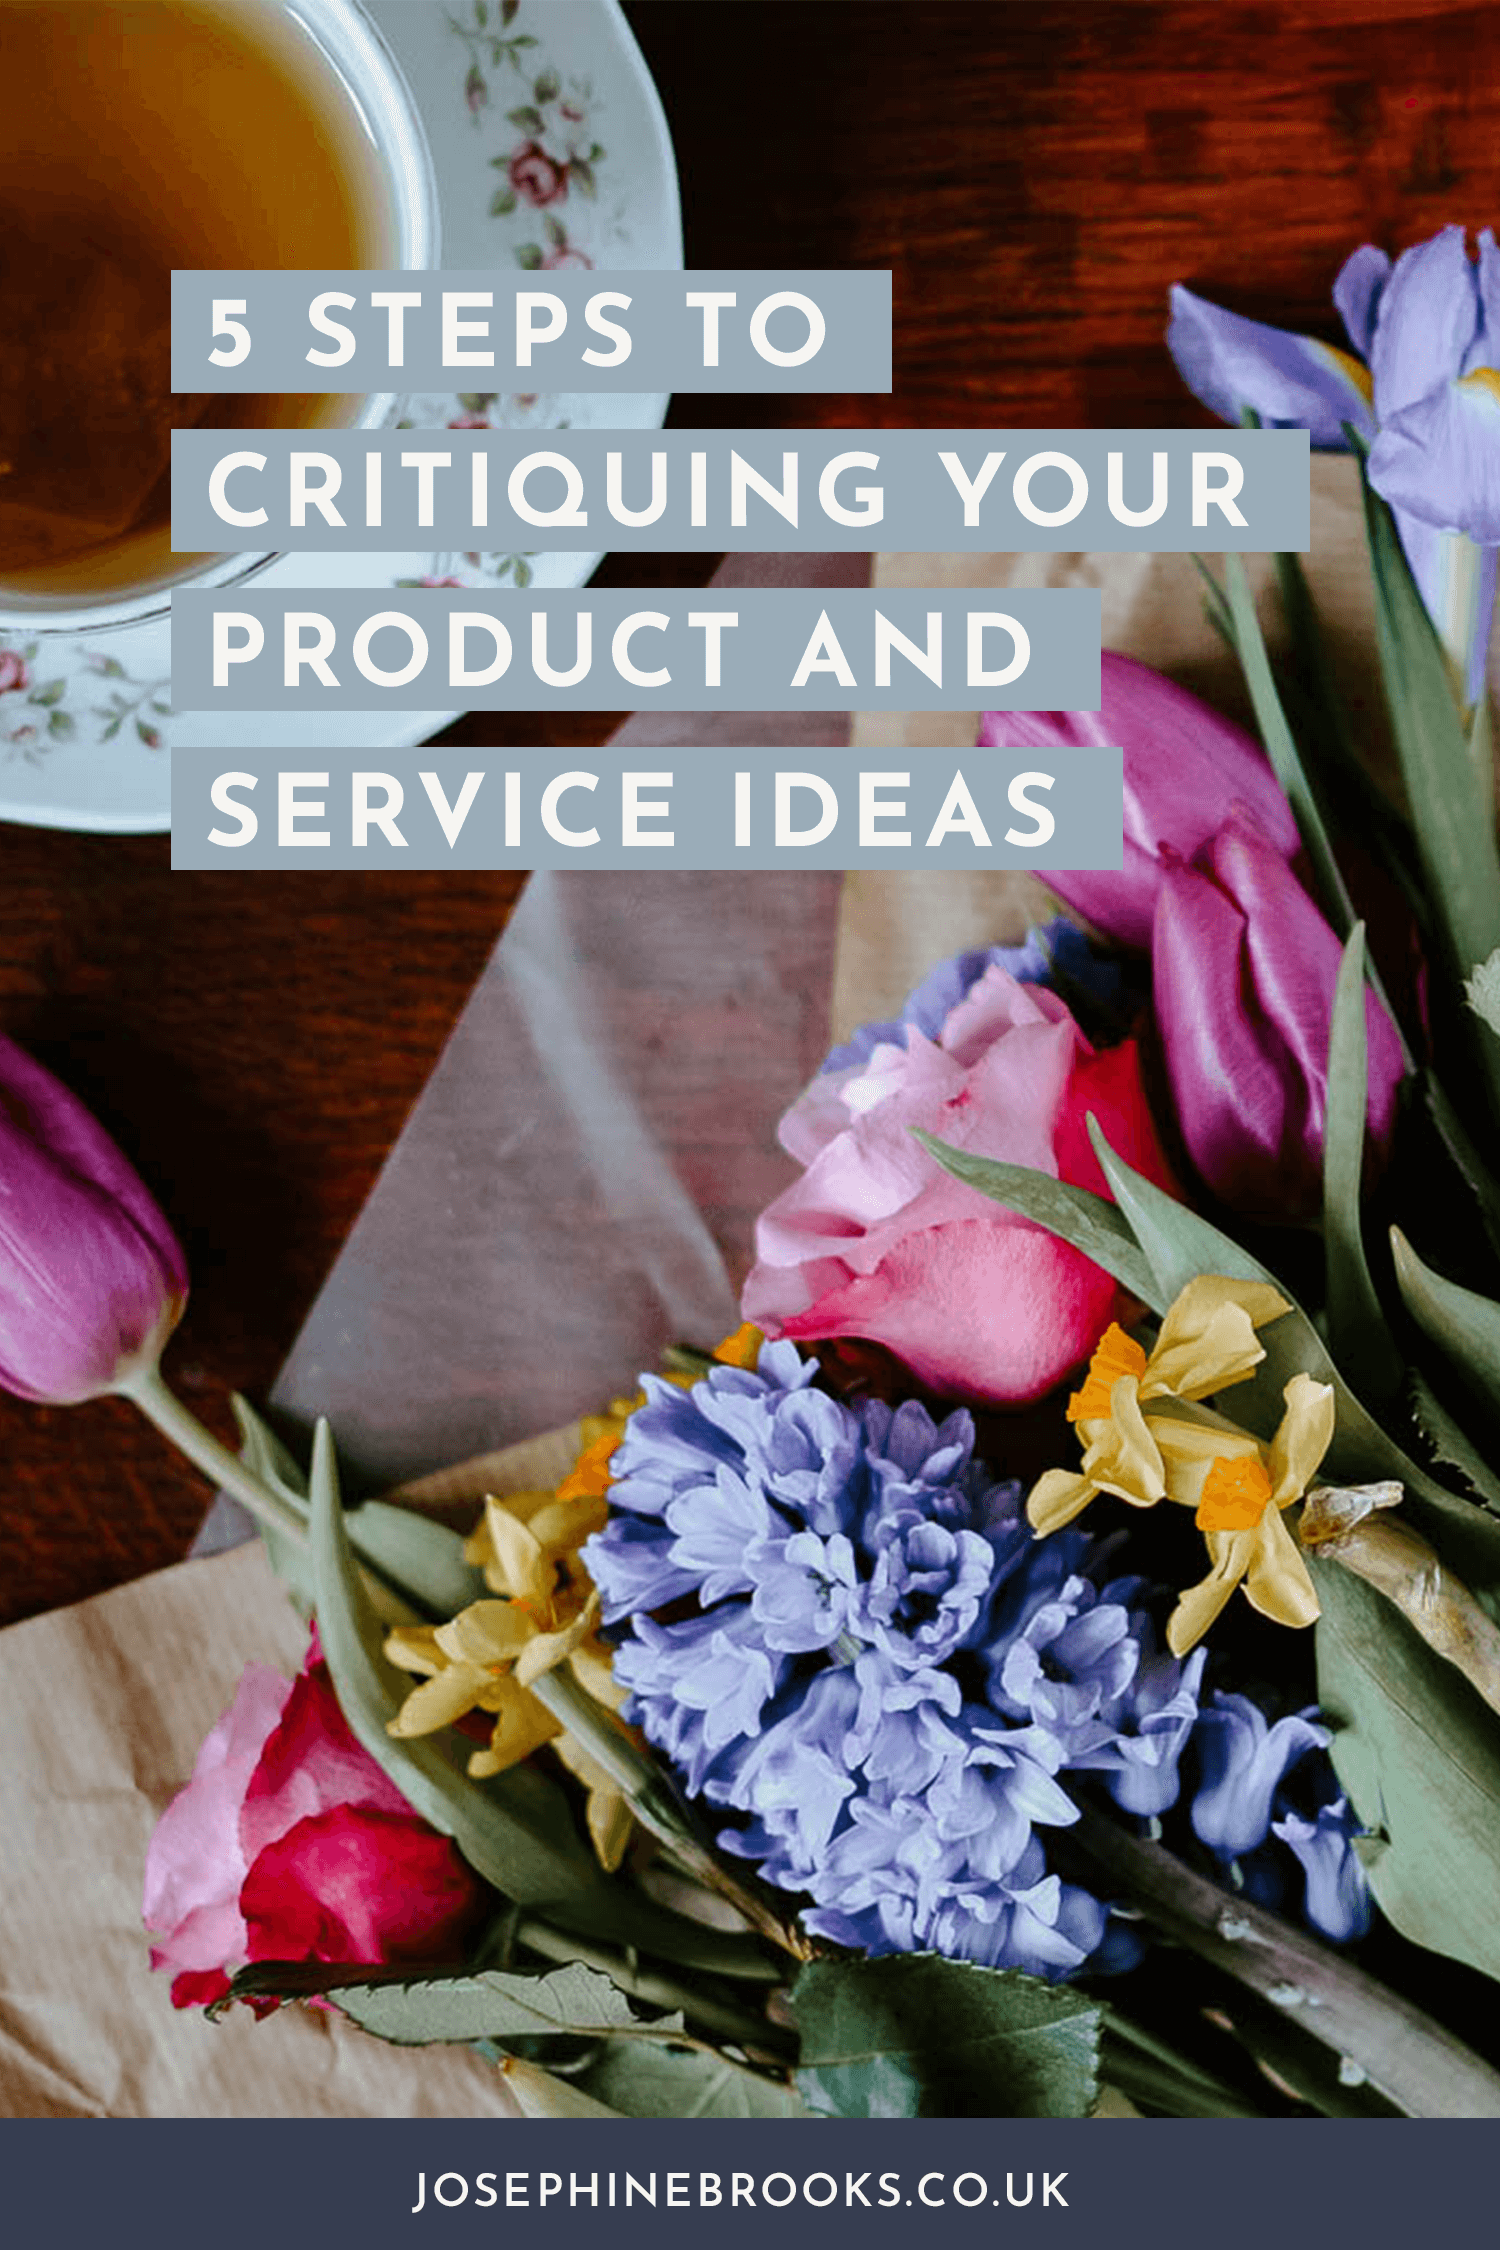 5 steps to critiquing your product and service ideas, How to pick product ideas, Which ideas should I focus on, 9 steps to critiquing your new product ideas, How to pick product ideas, how to create new product ideas, creative business product mix | Josephine Brooks